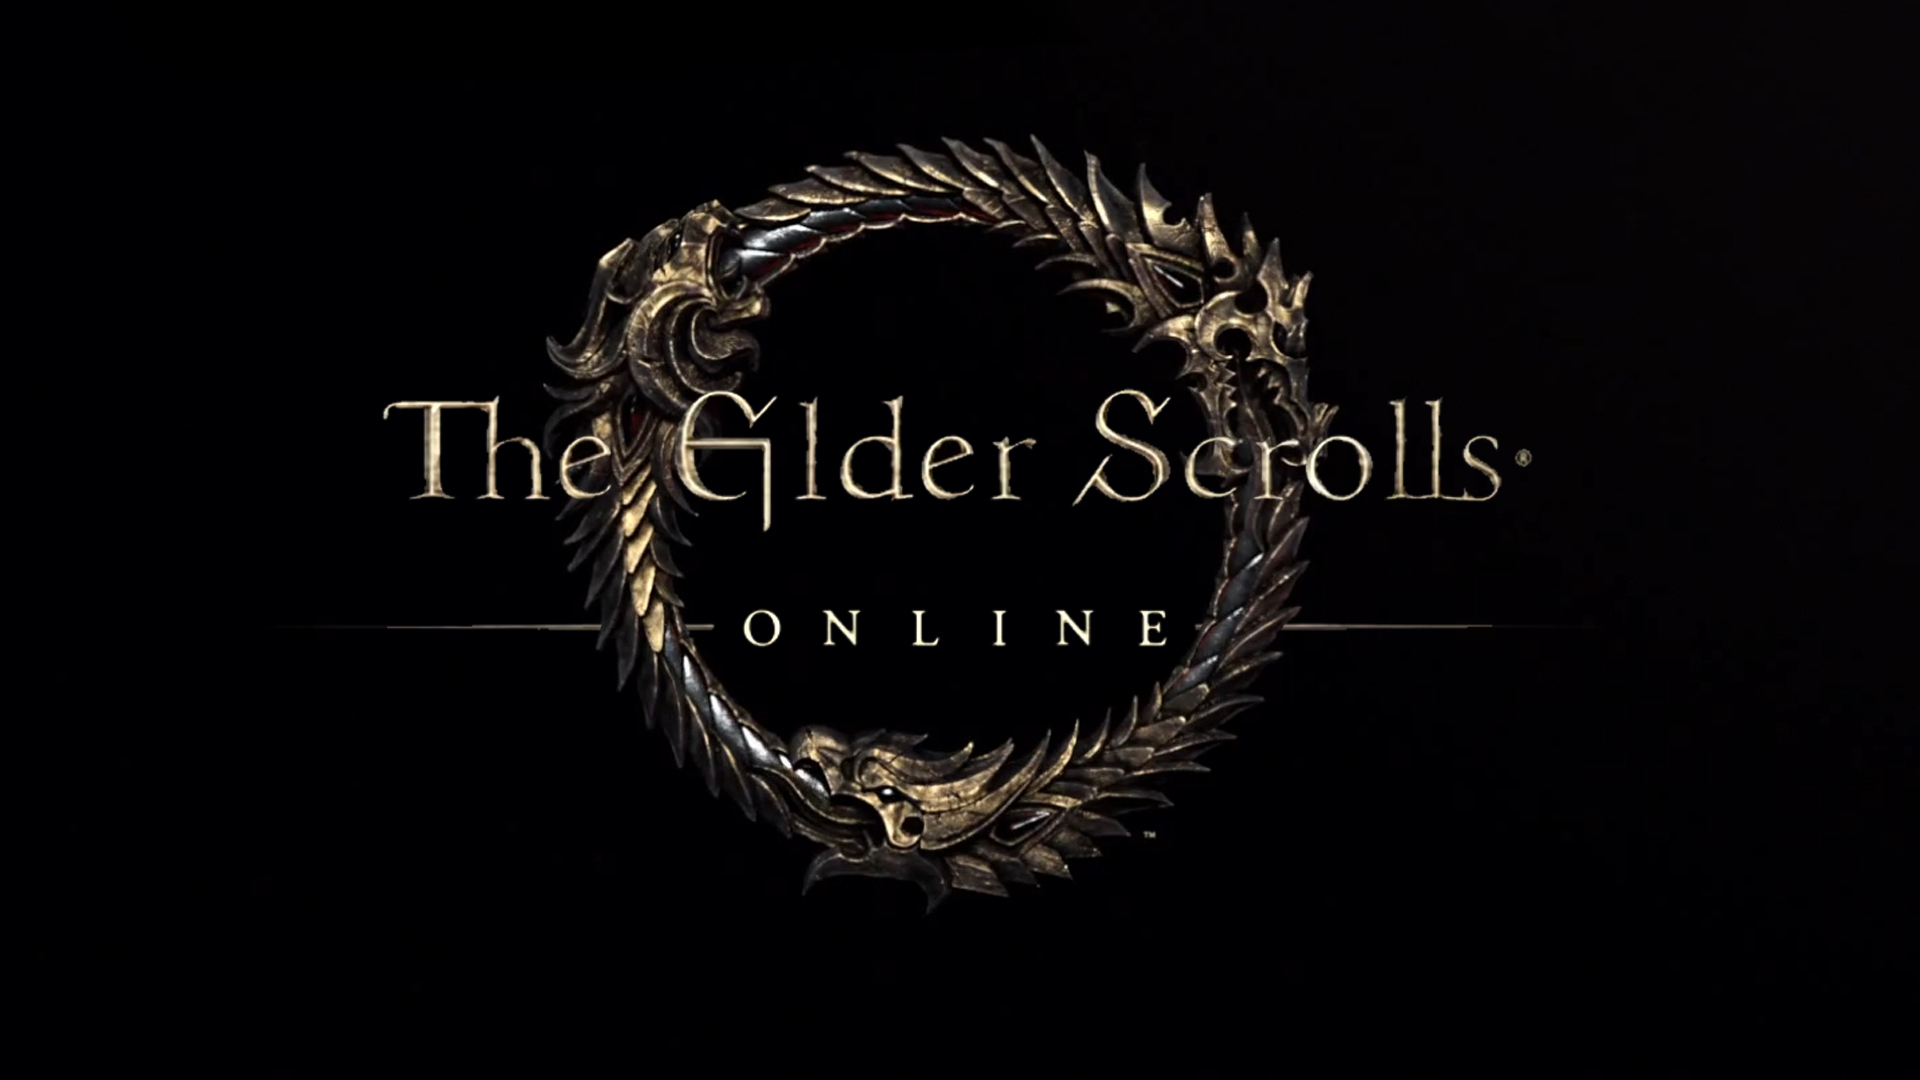 The Elder Scrolls Online: Tamriel Unlimited - The Elder Scrolls With Friends - UGR Gaming